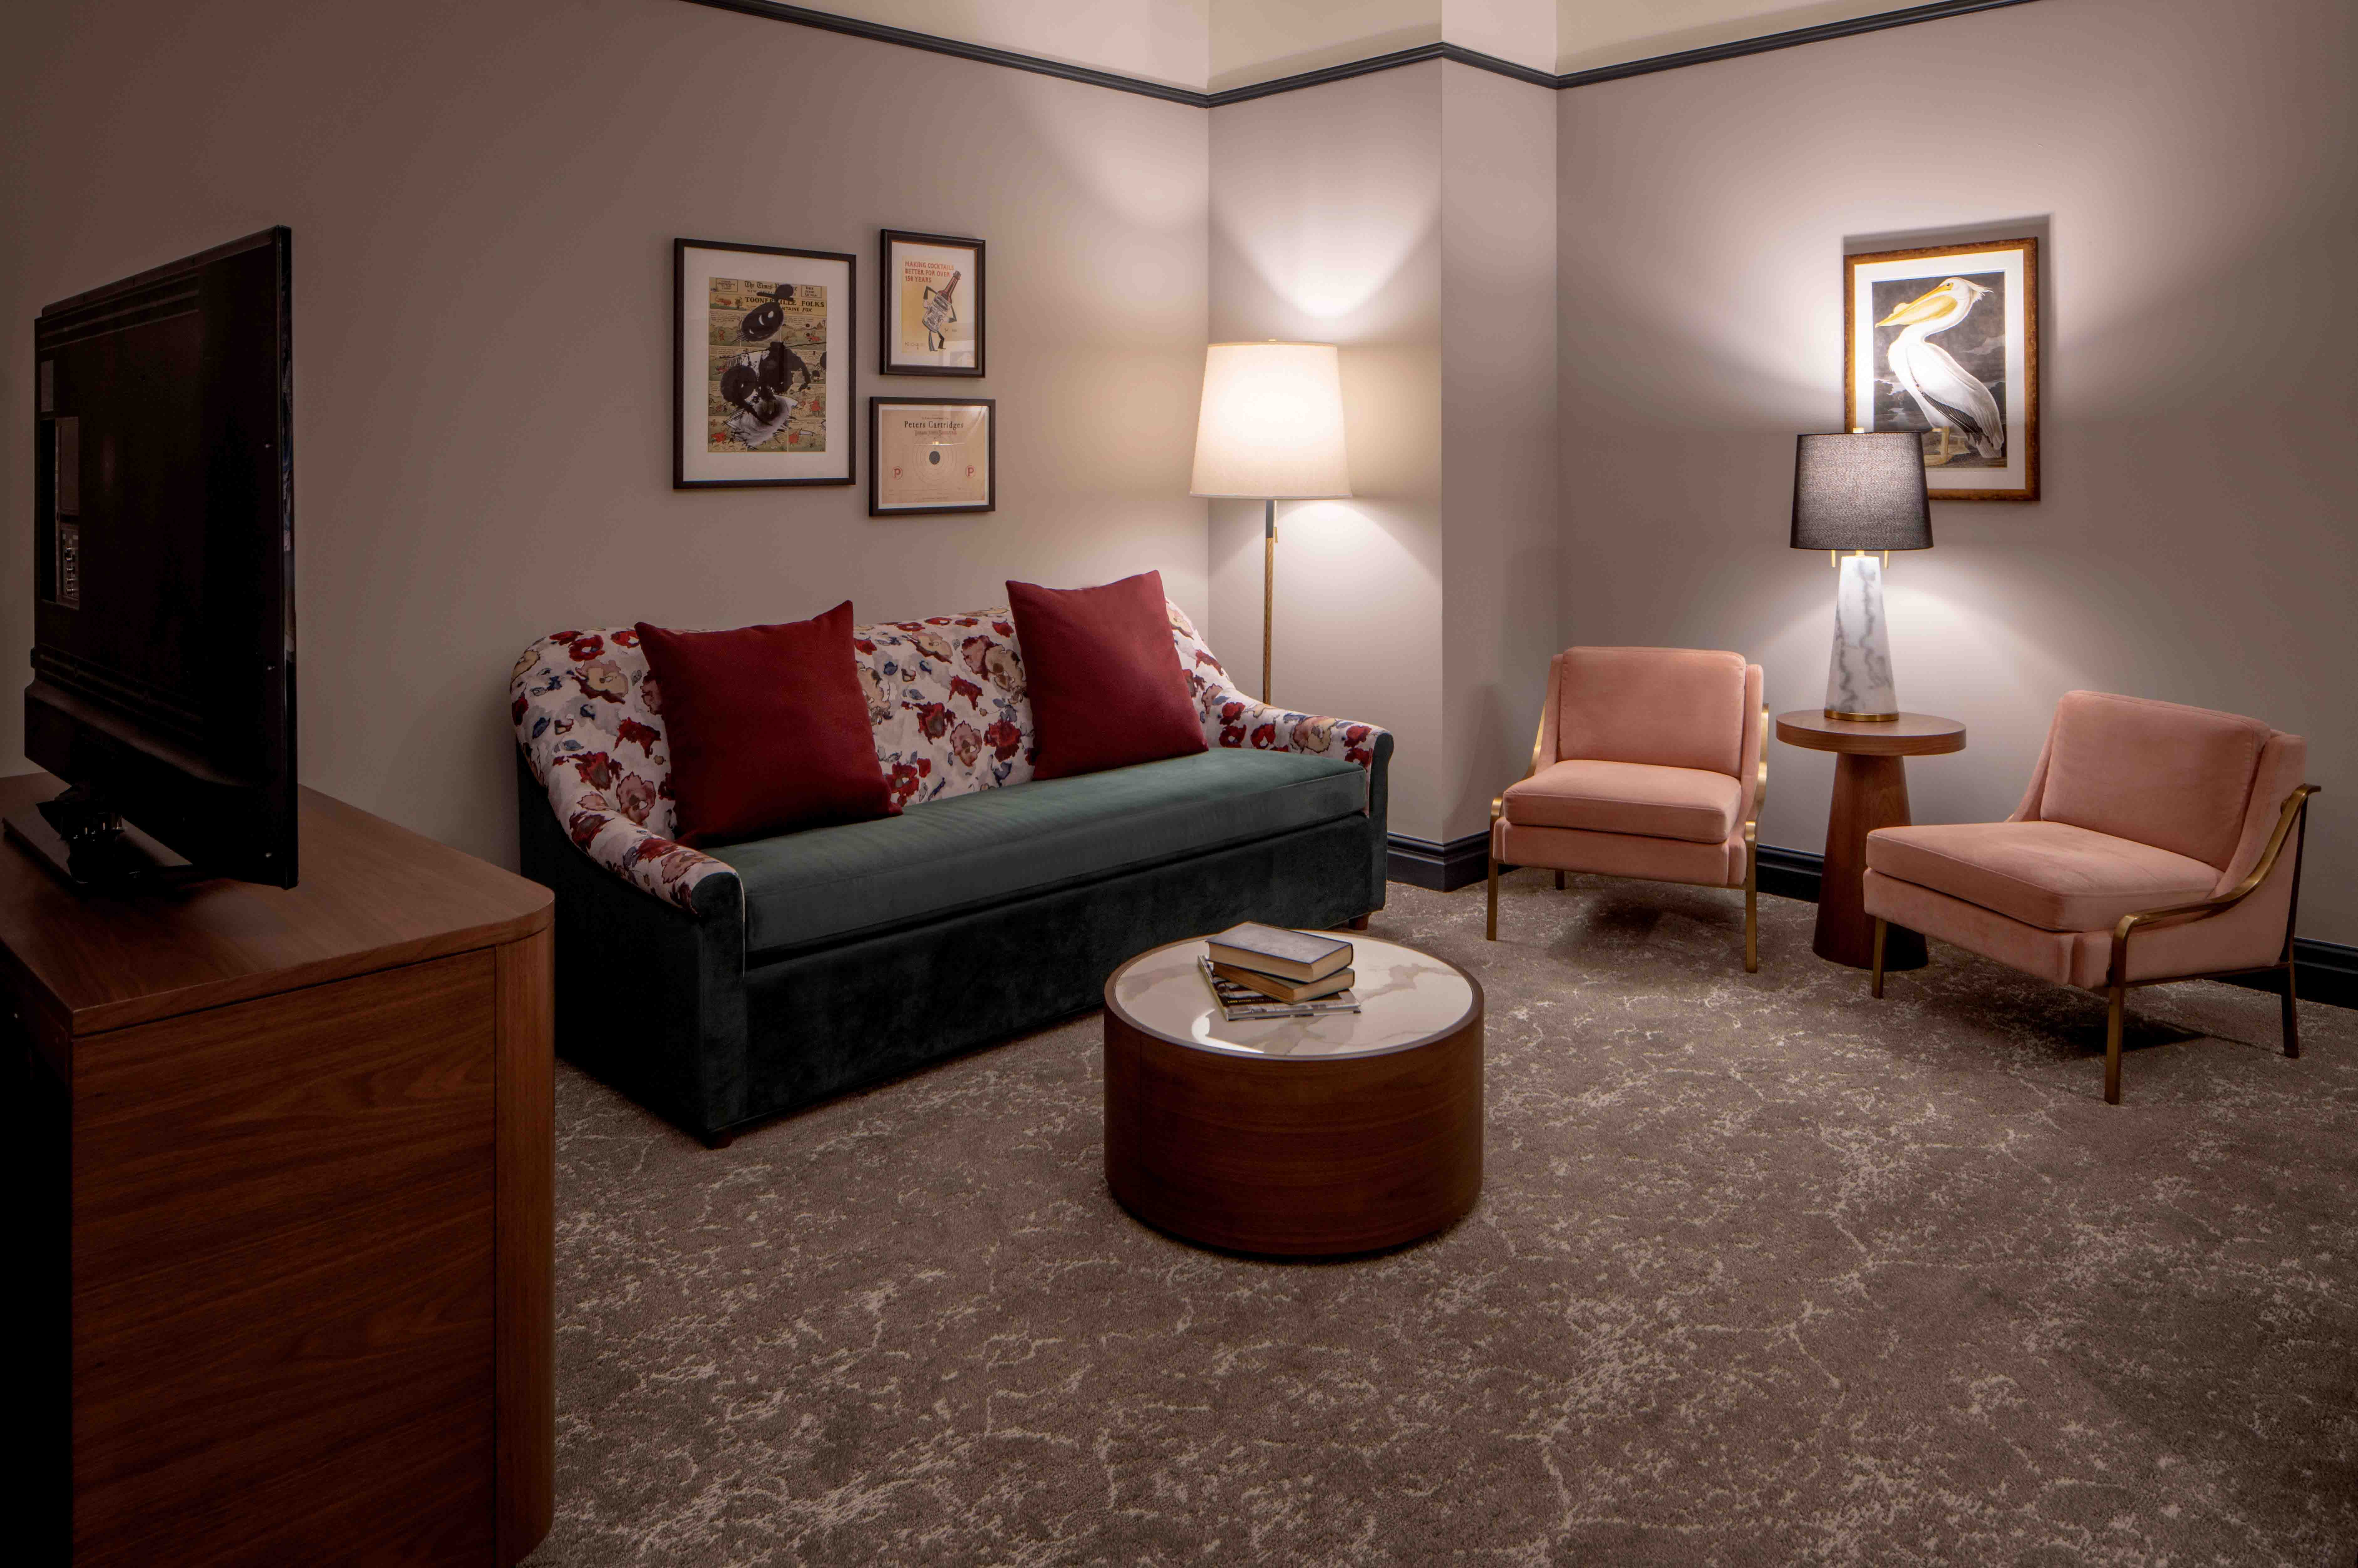 The-Eliza-Jane-Publishers-Suite-Seating-MFRZD